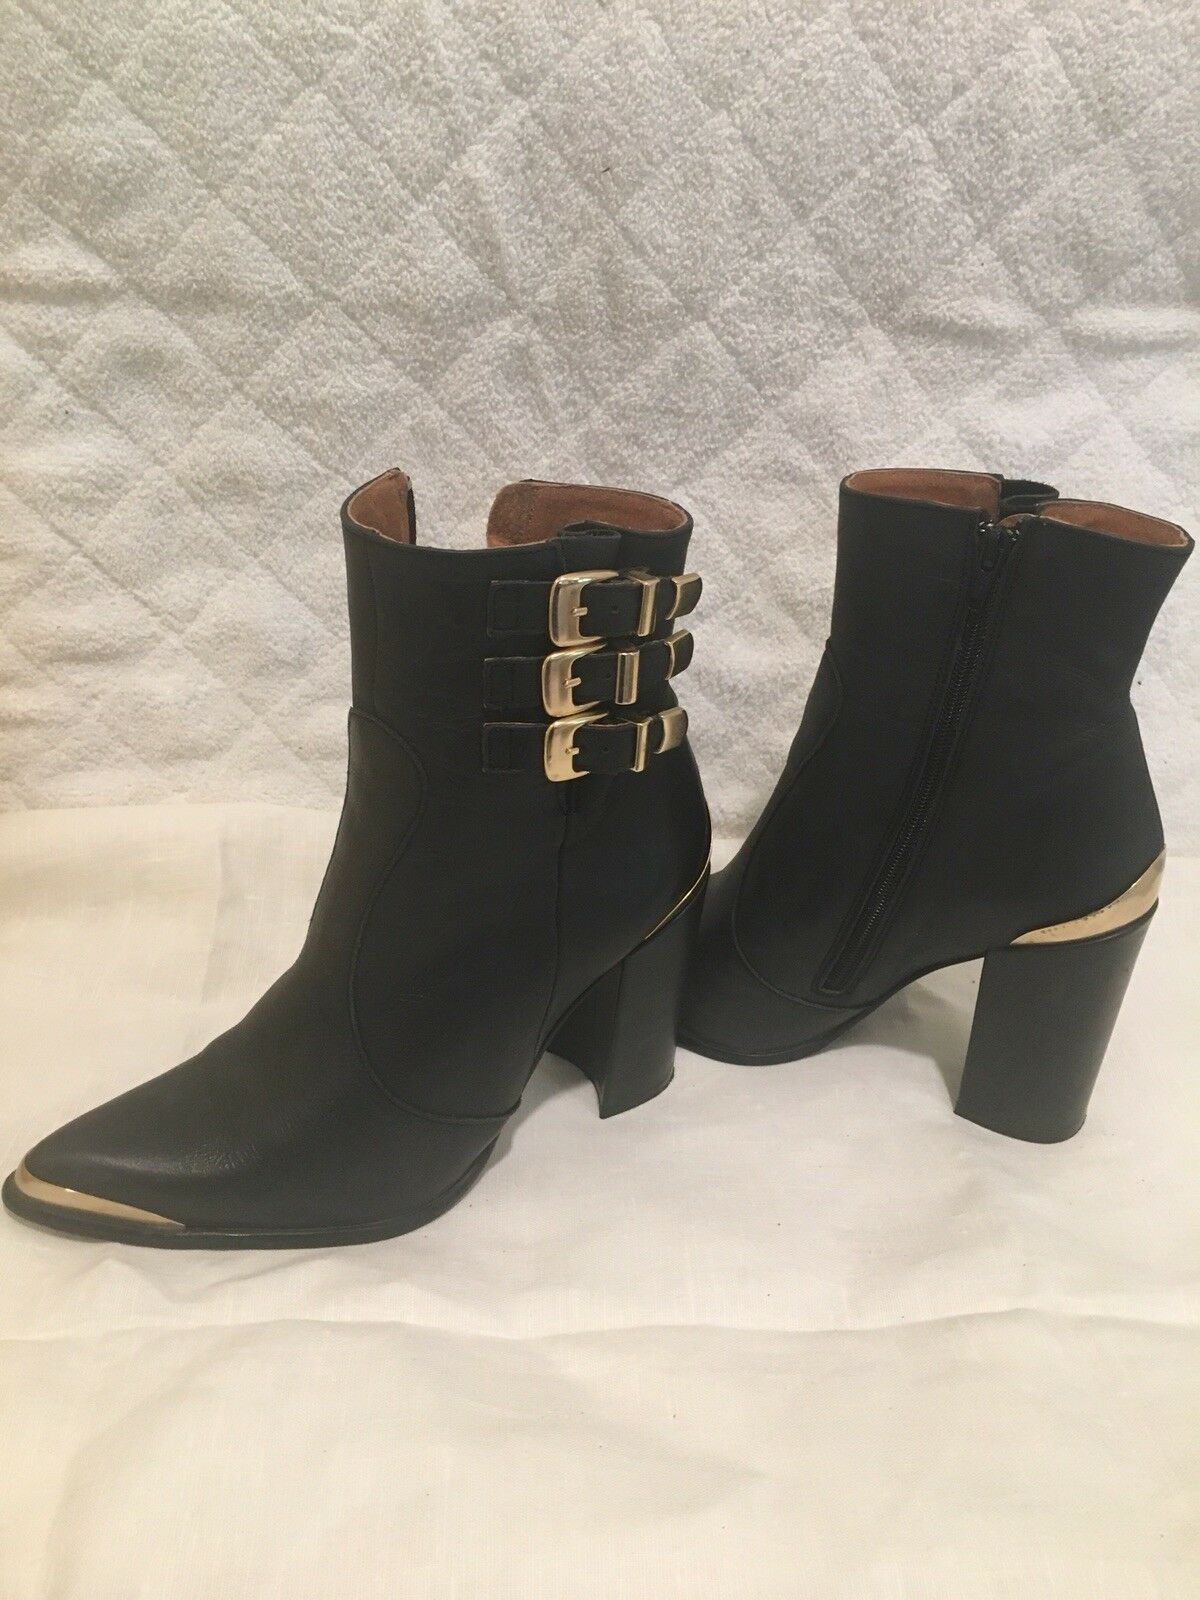 JEFFREY CAMPBELL BLACK LEATHER HEEL ANKLE BOOT BUKLE ZIPPER SIDE SPAIN SZ 40